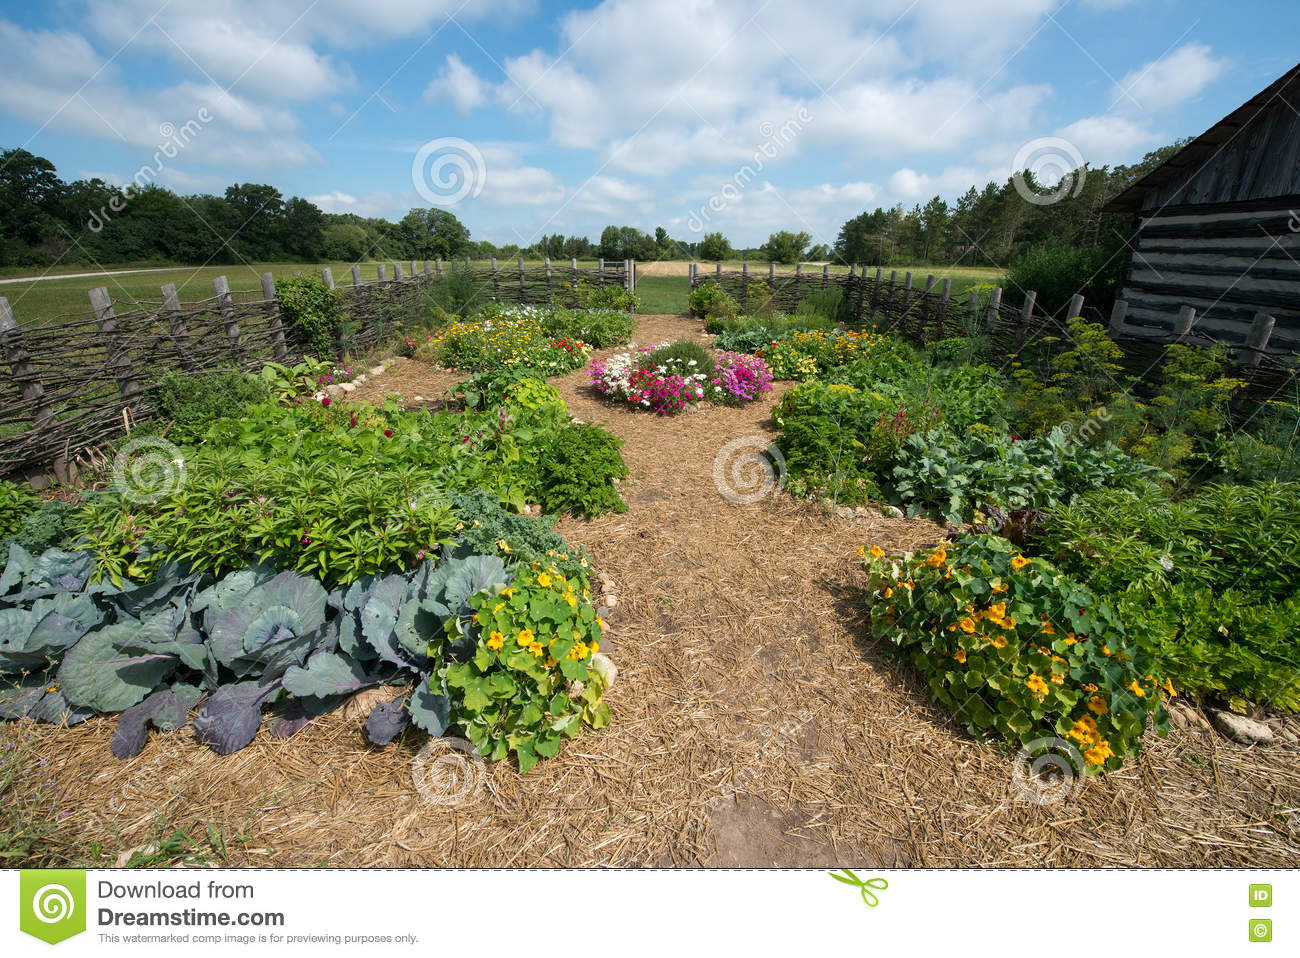 Country vegetable gardens - Agriculture Cabin Country Farm Farming Food Garden Log Rural Rustic Vegetable